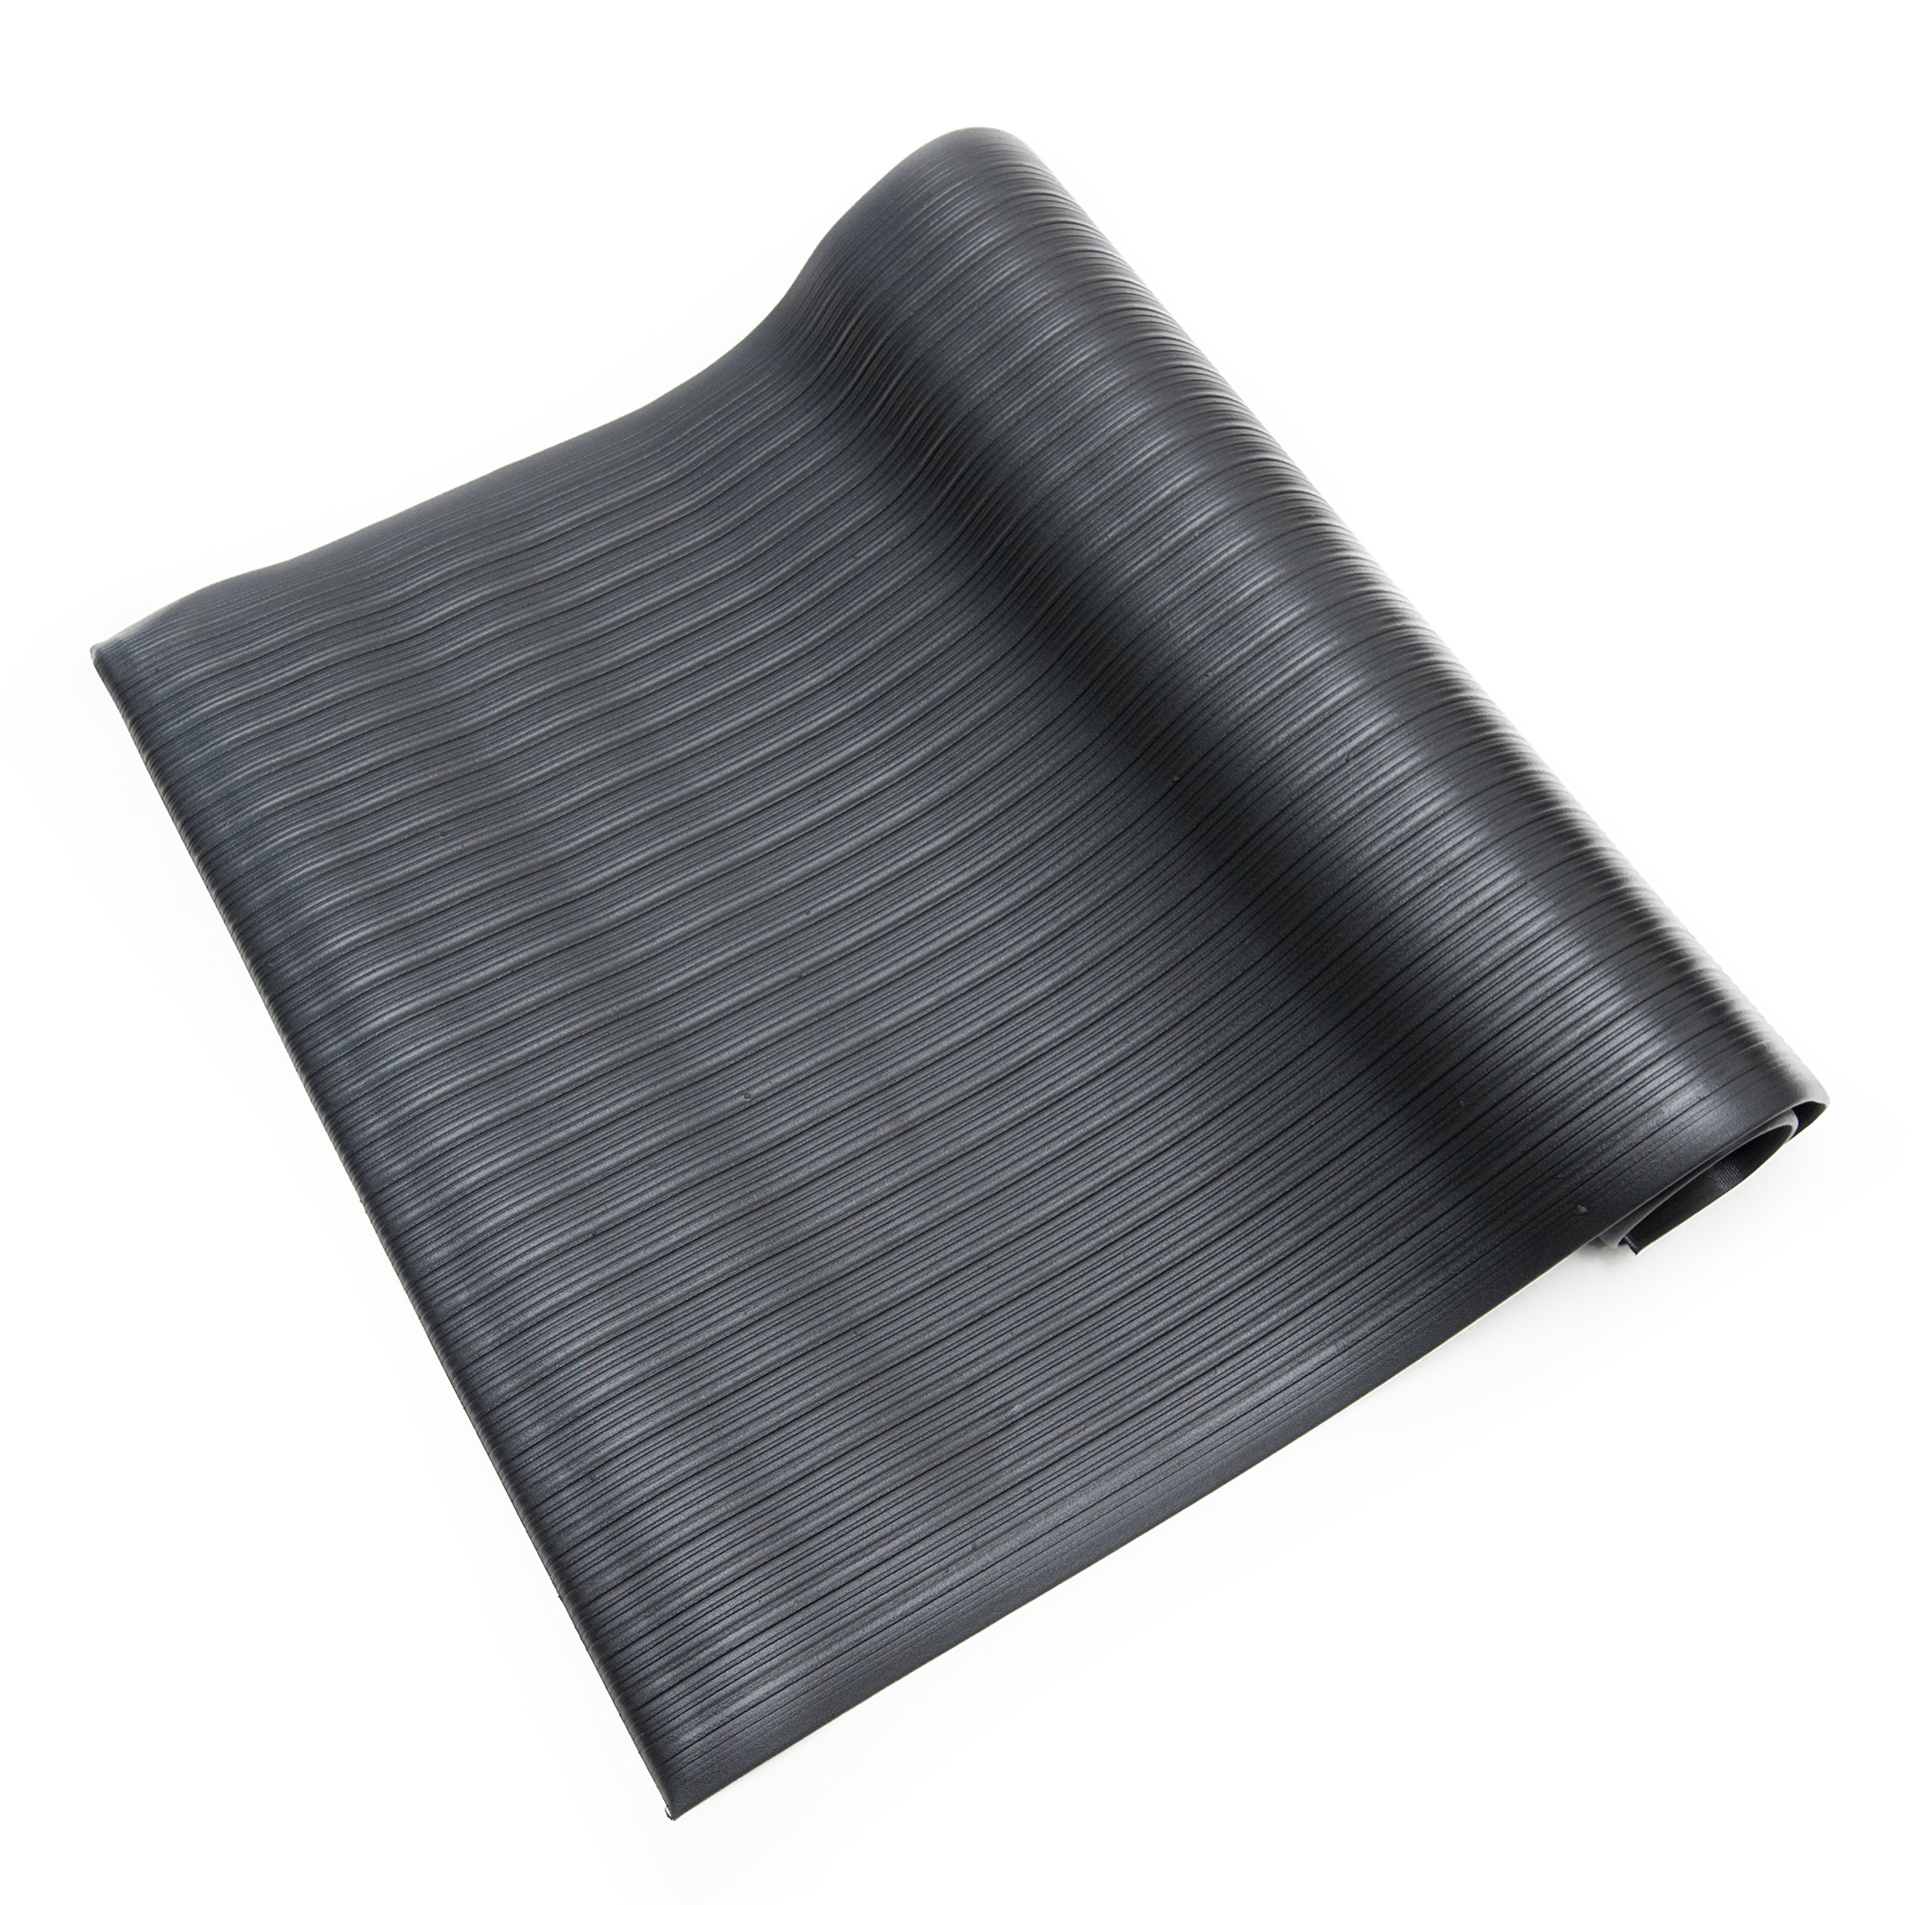 Bertech Anti Fatigue Vinyl Foam Floor Mat, 3' Wide x 5' Long x 3/8'' Thick, Ribbed Pattern, Black, Bevelled on All Four Sides  (Made in USA)